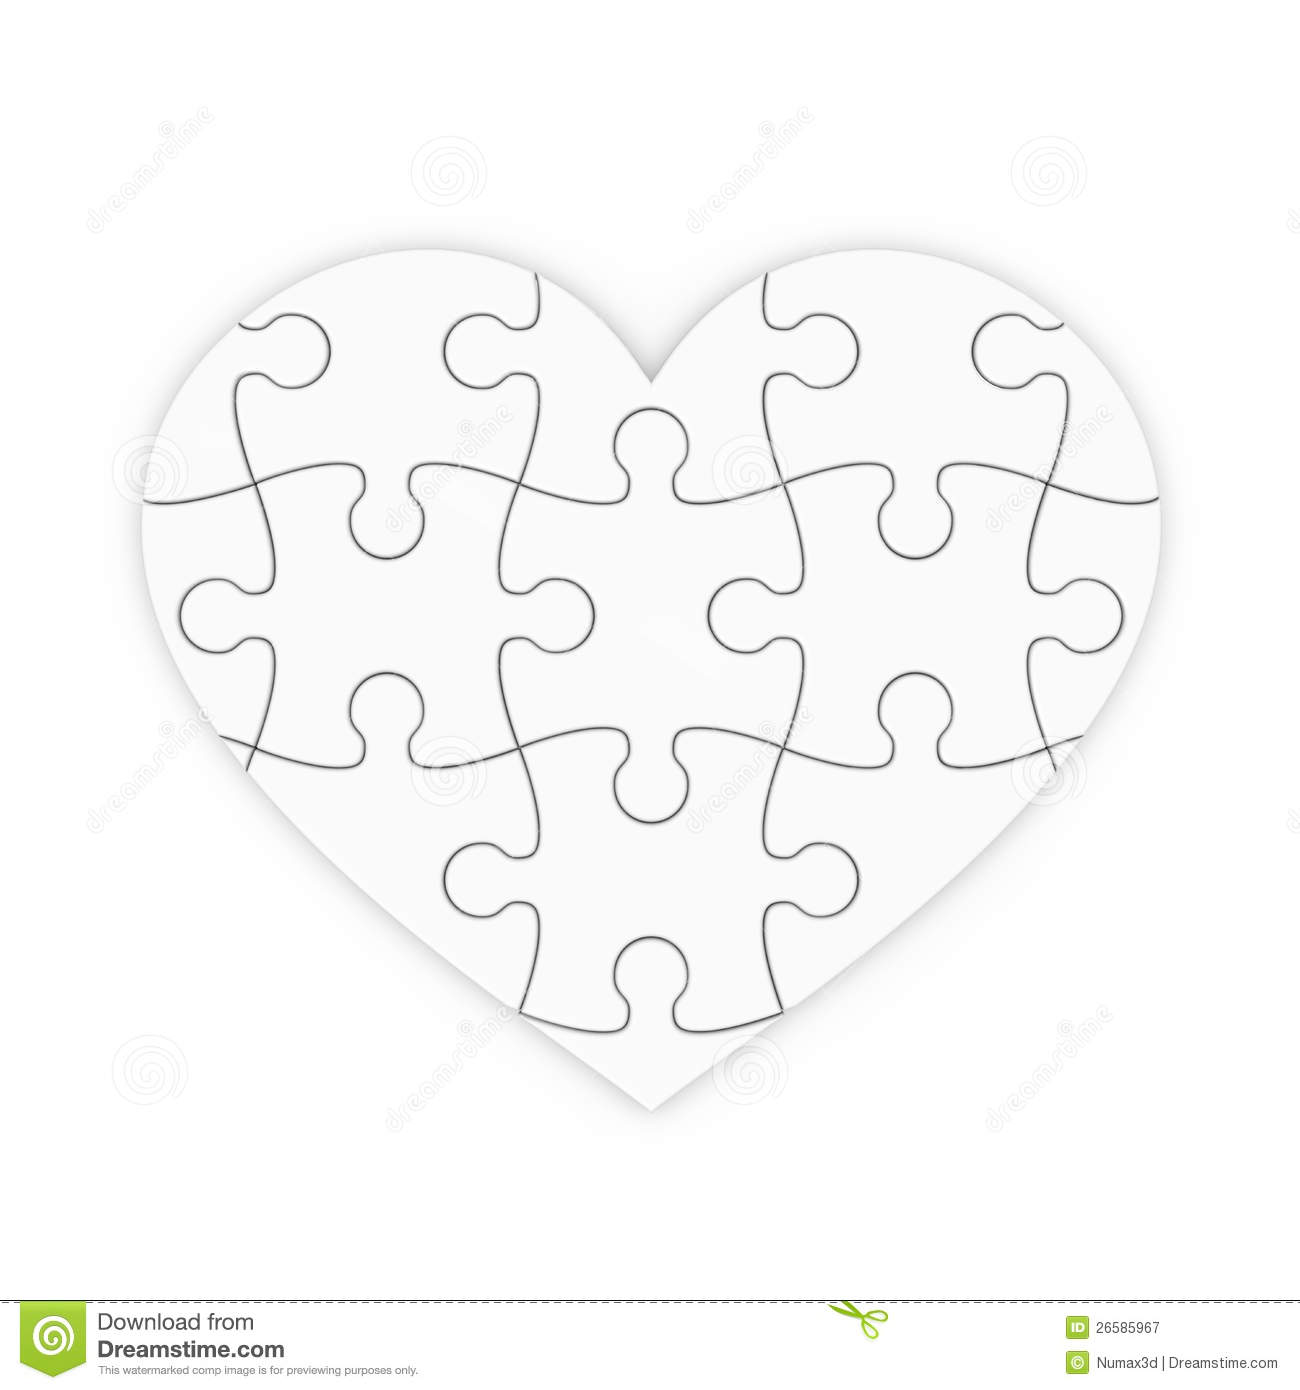 Puzzle Of A Heart Isolated Jigsaw Stock Illustration